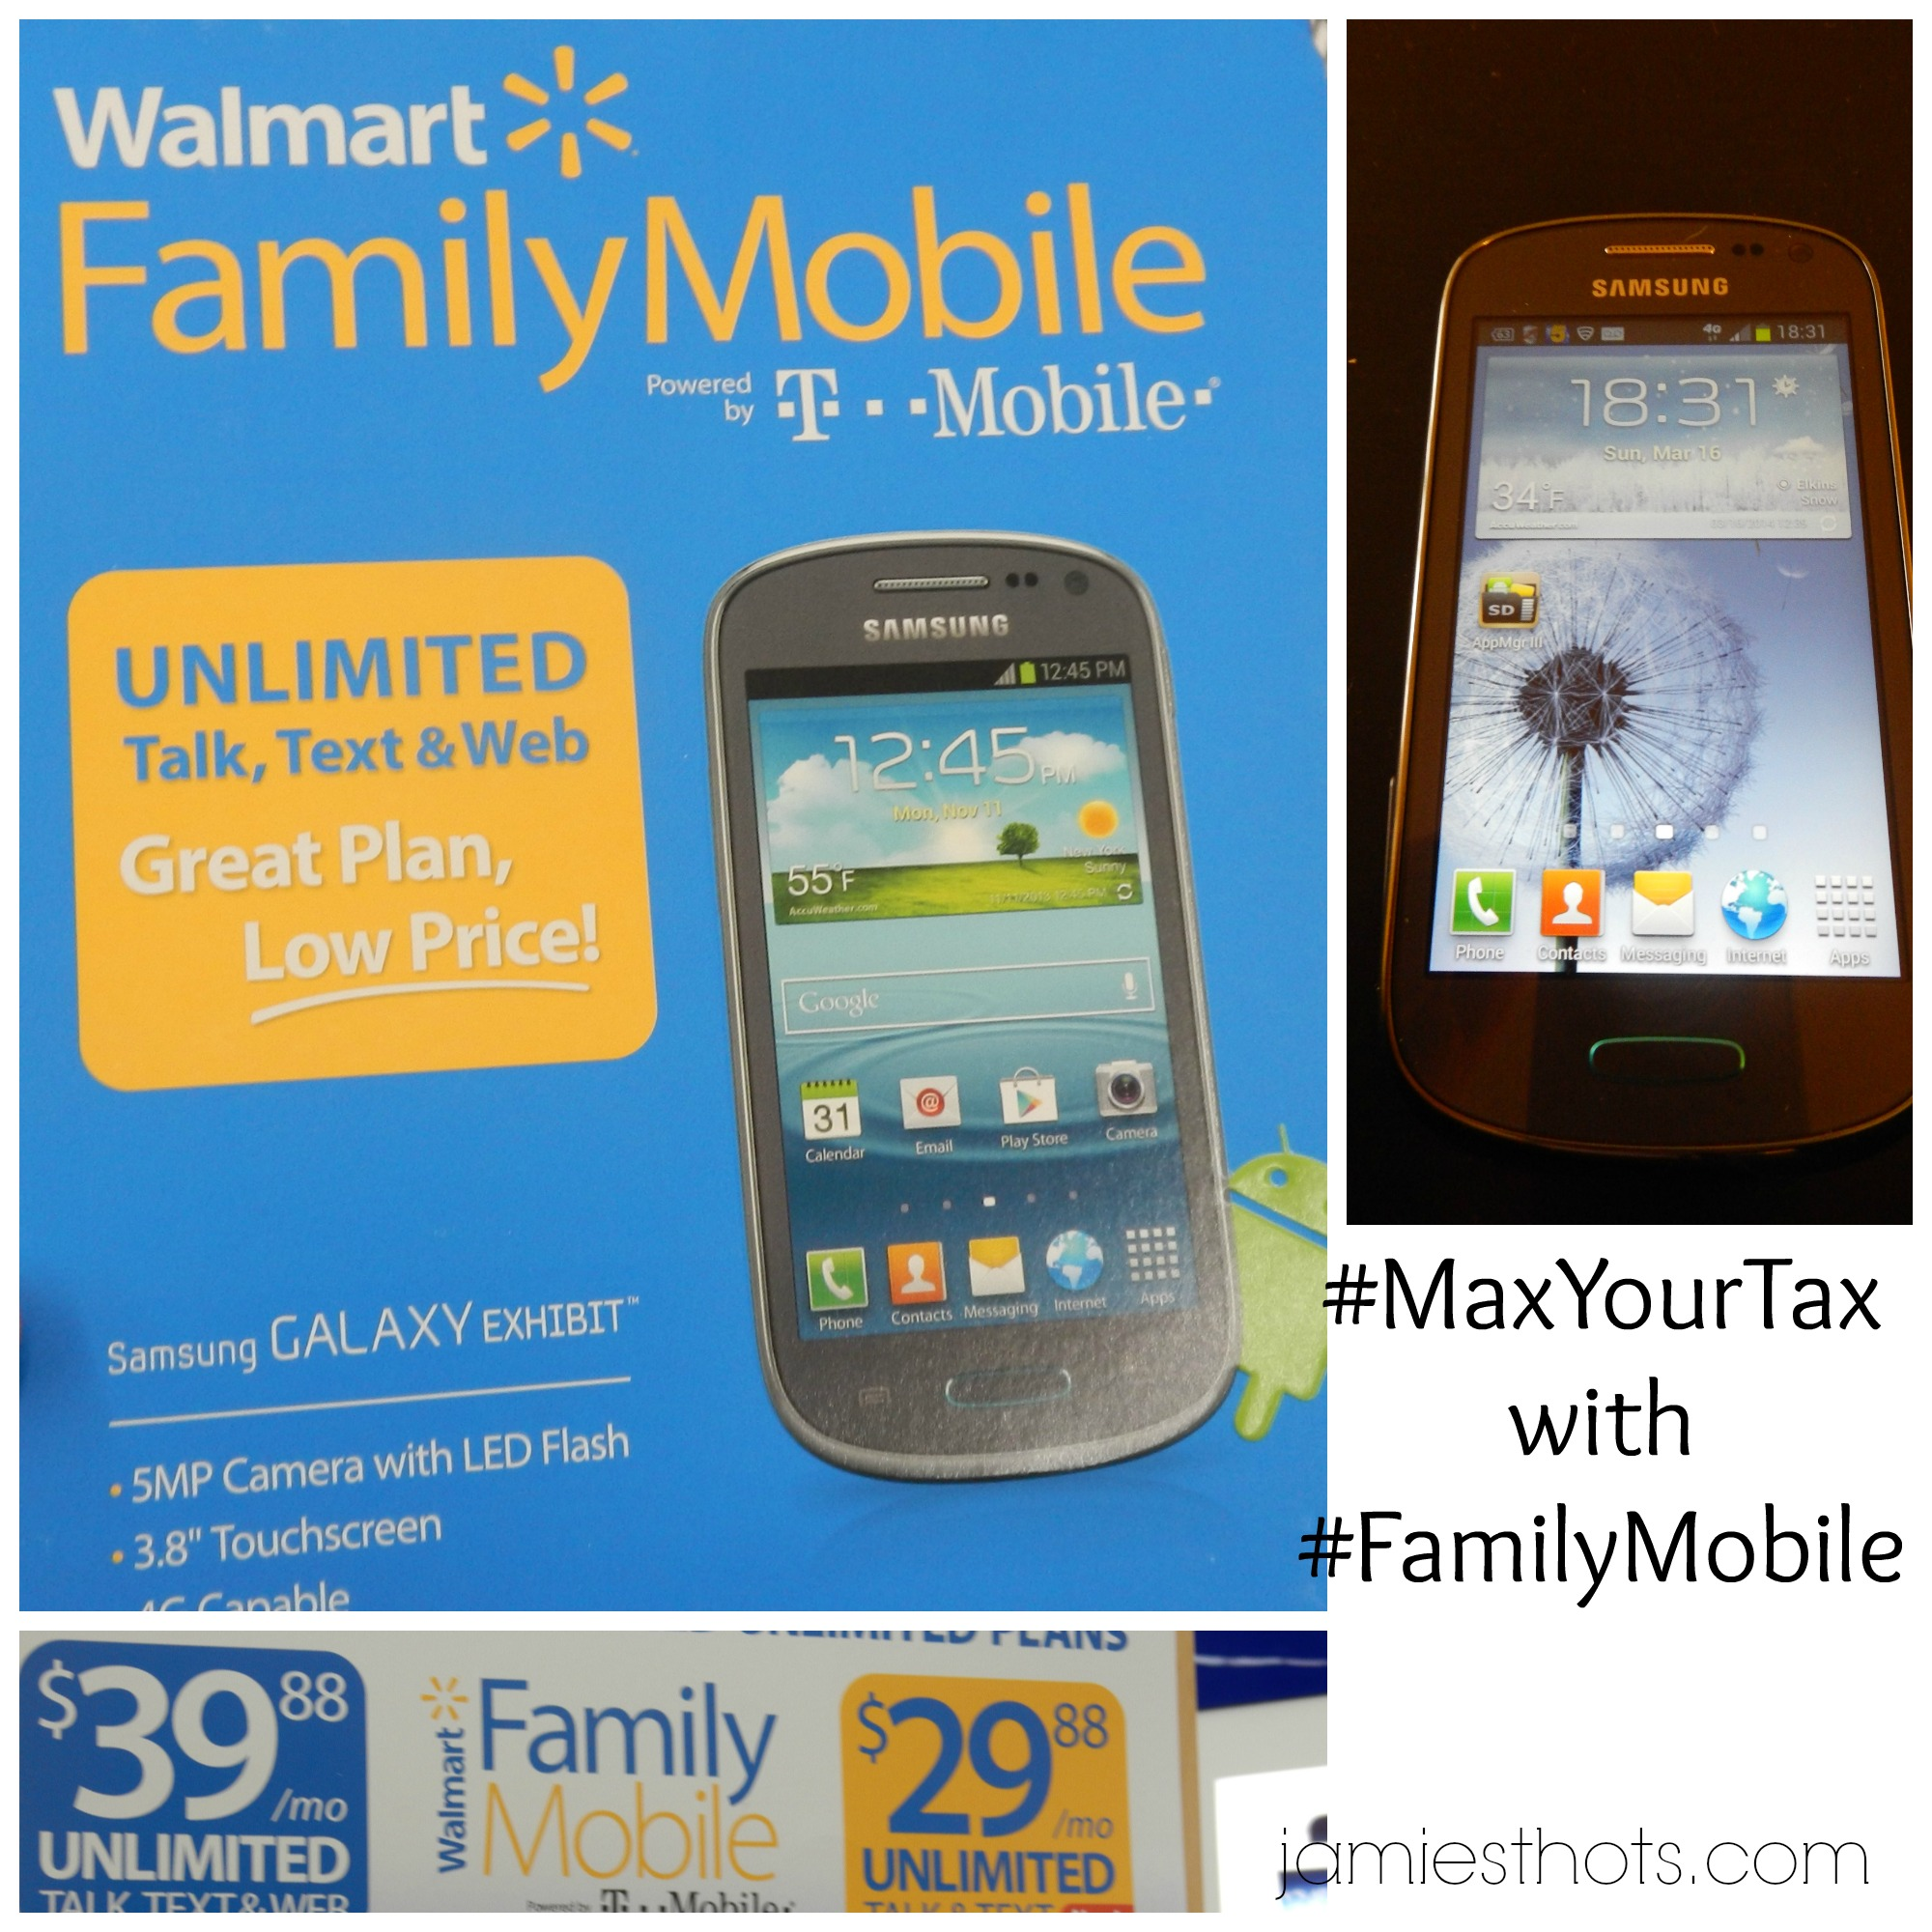 Self-employed? Need to max your tax return? Try Walmart Family Mobile